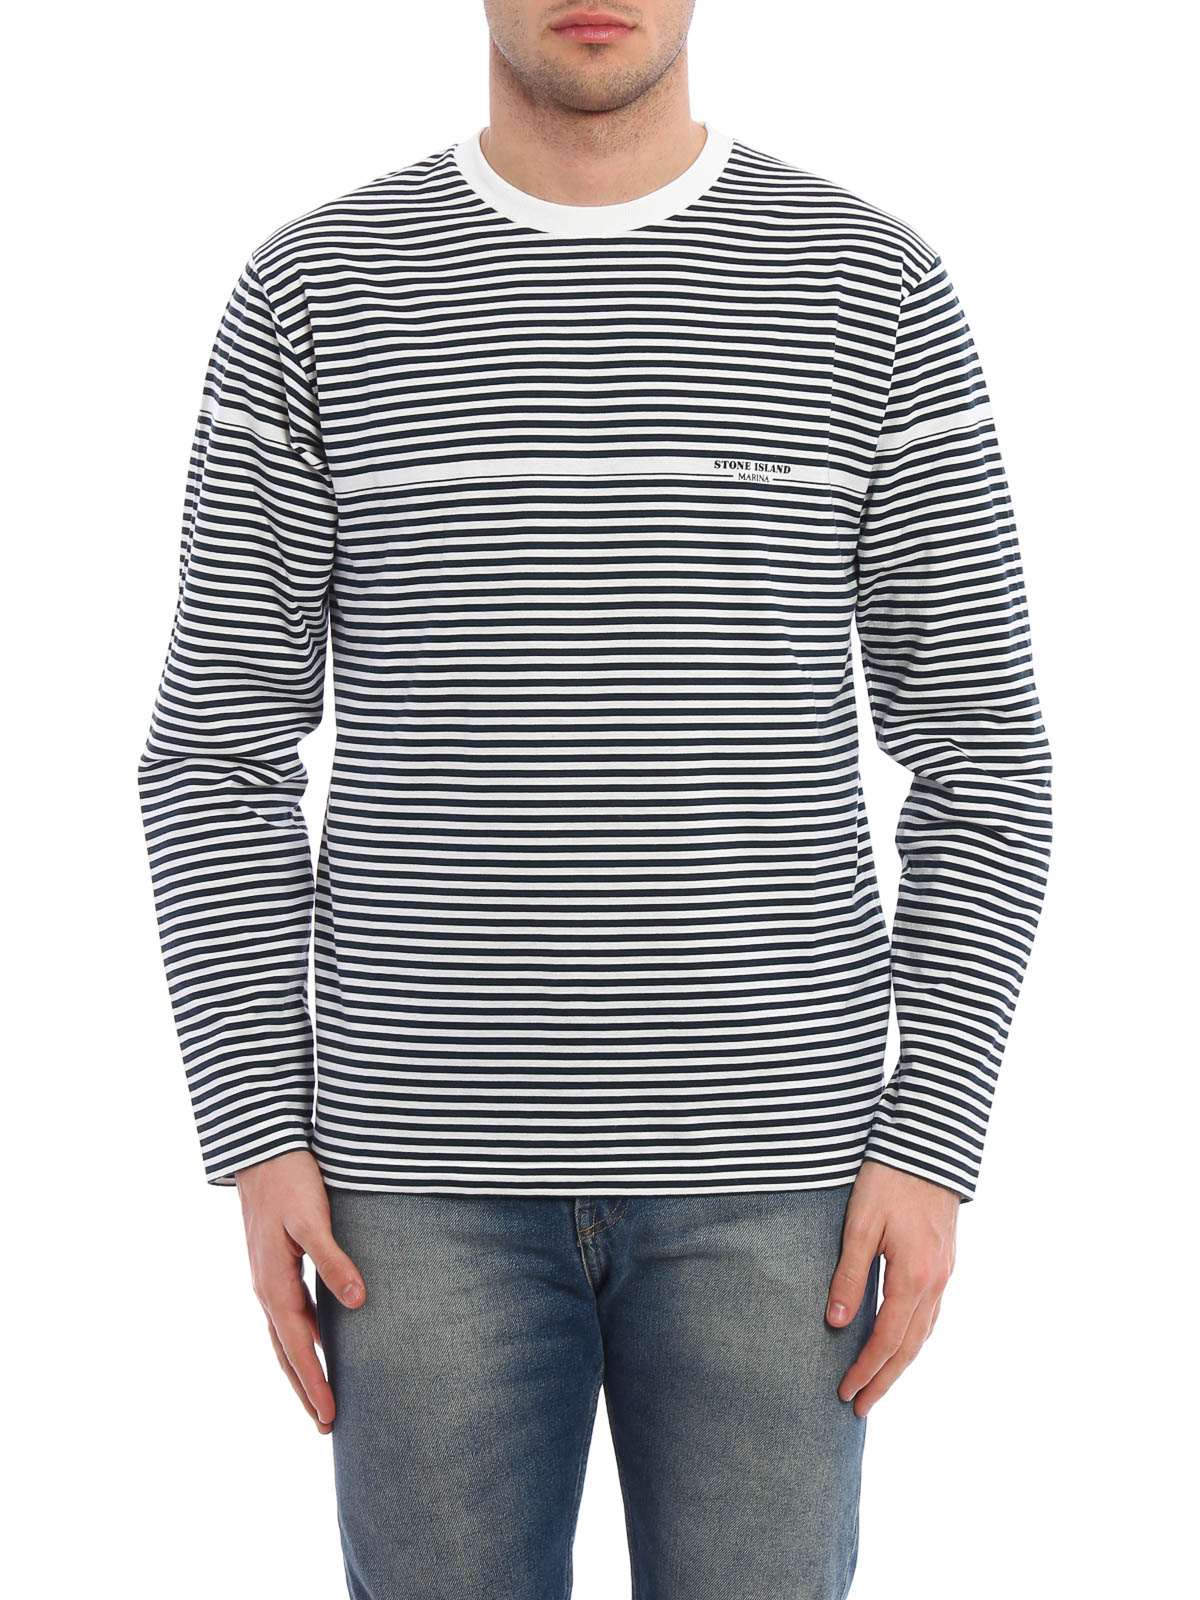 Long sleeved striped cotton t shirt by stone island t for Long sleeve cotton tee shirts